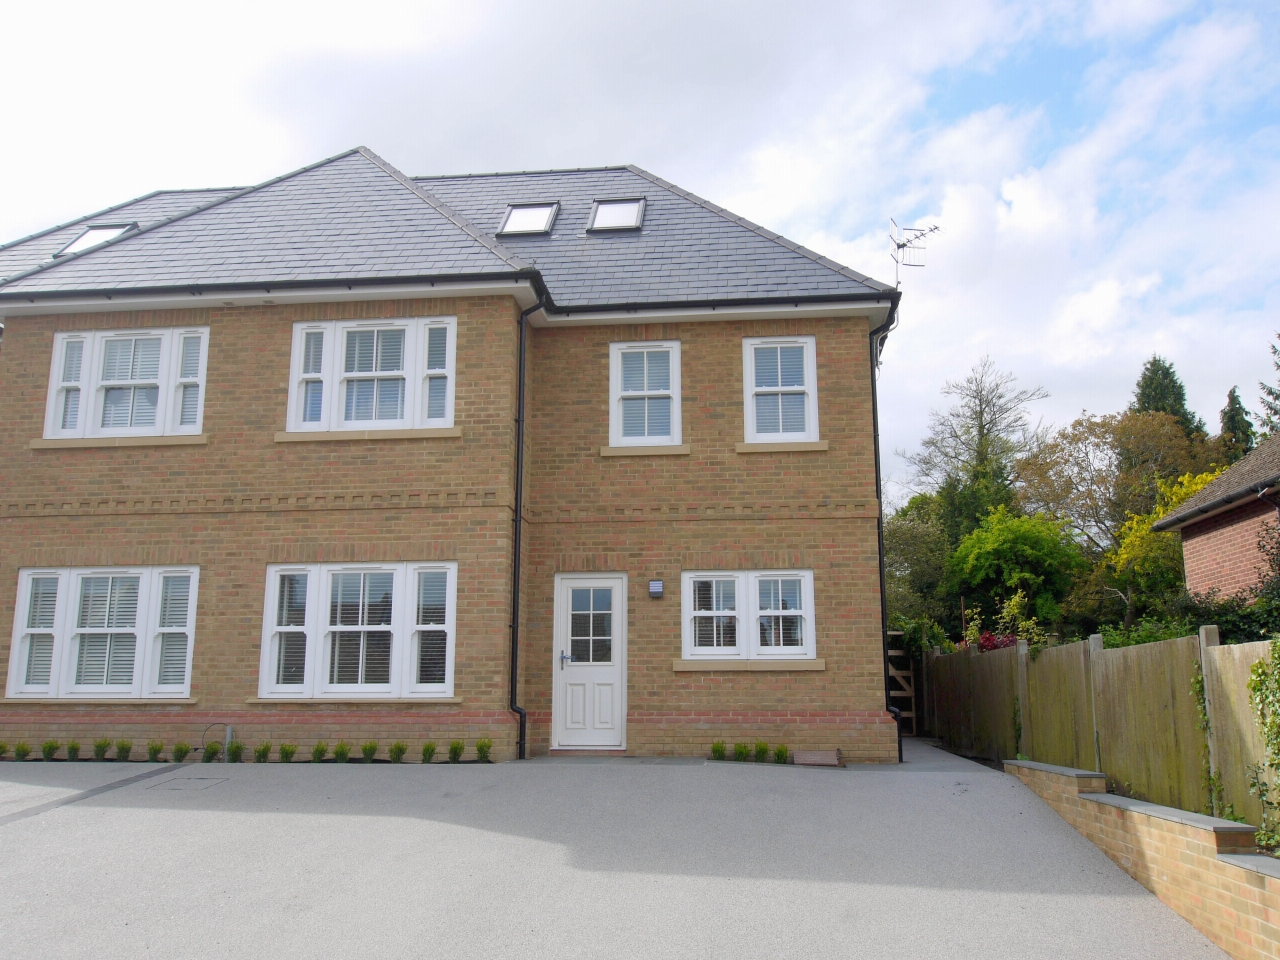 5 bedroom semi-detached house To Let in Sevenoaks - Photograph 1